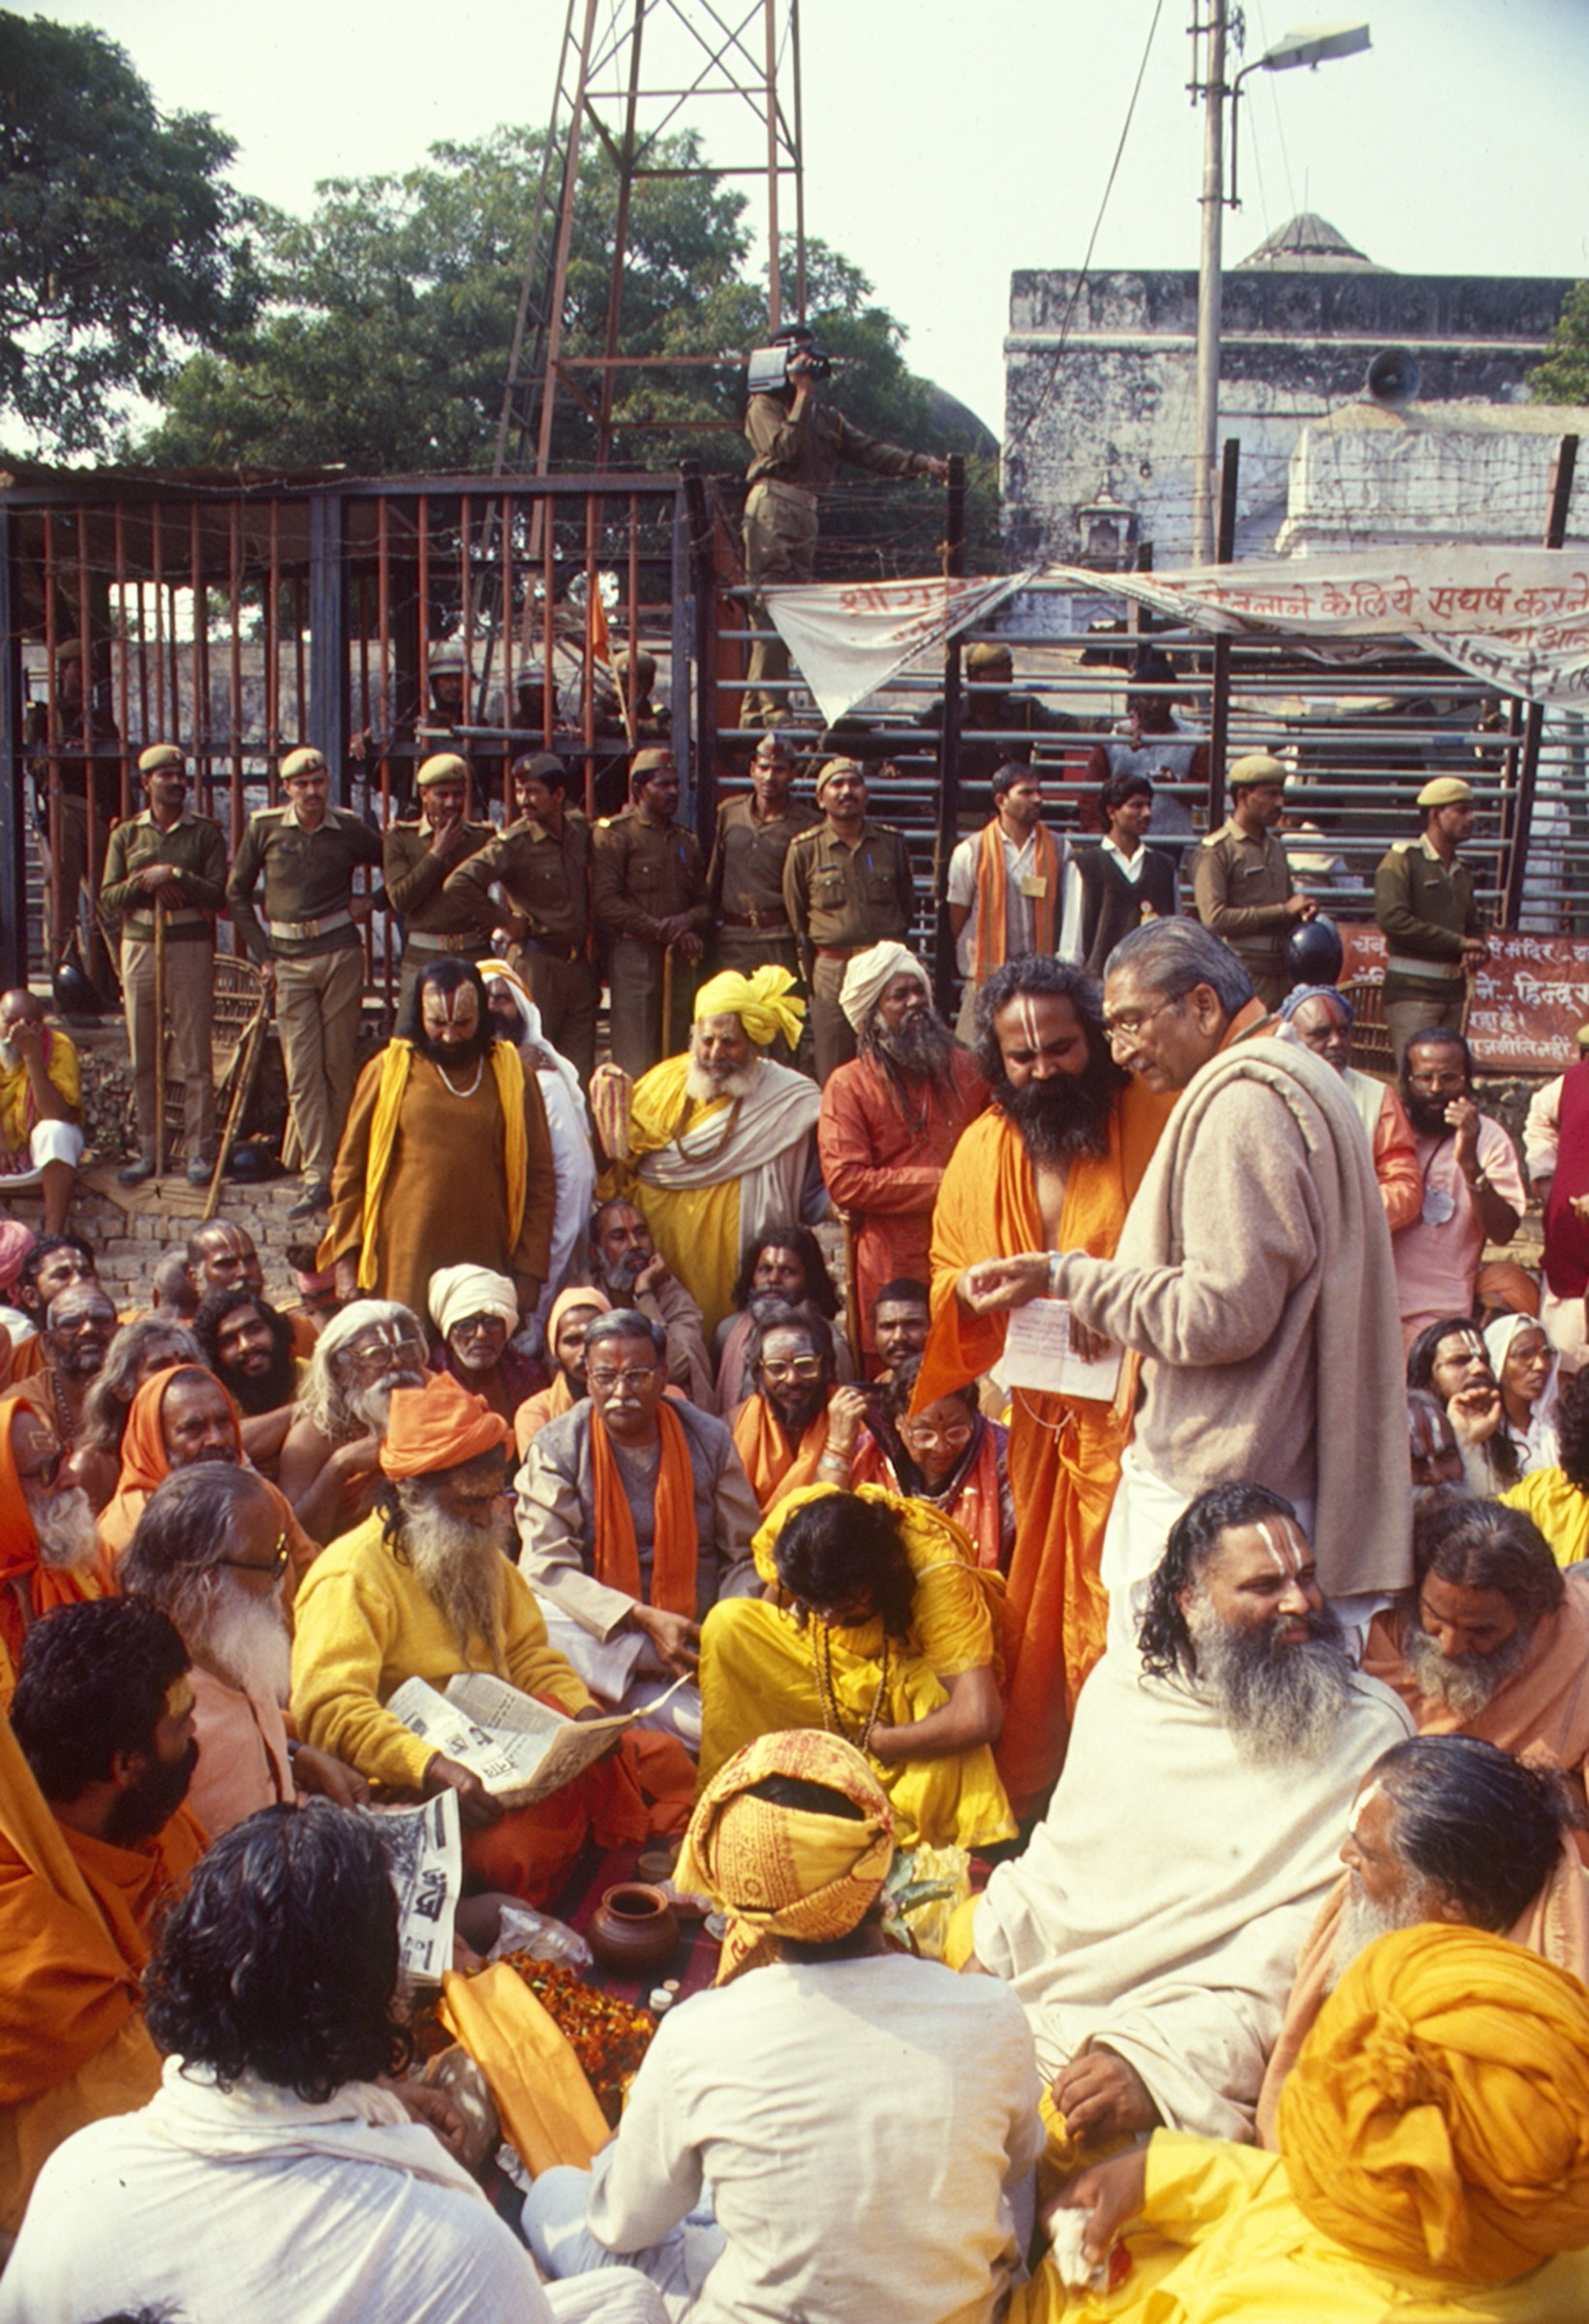 VHP leader Ashok Singhal in a discussion with priests in Ayodhya on December 5, 1992. One of the domes of the Babri Masjid can be seen in the background. Credit: T. Narayan.